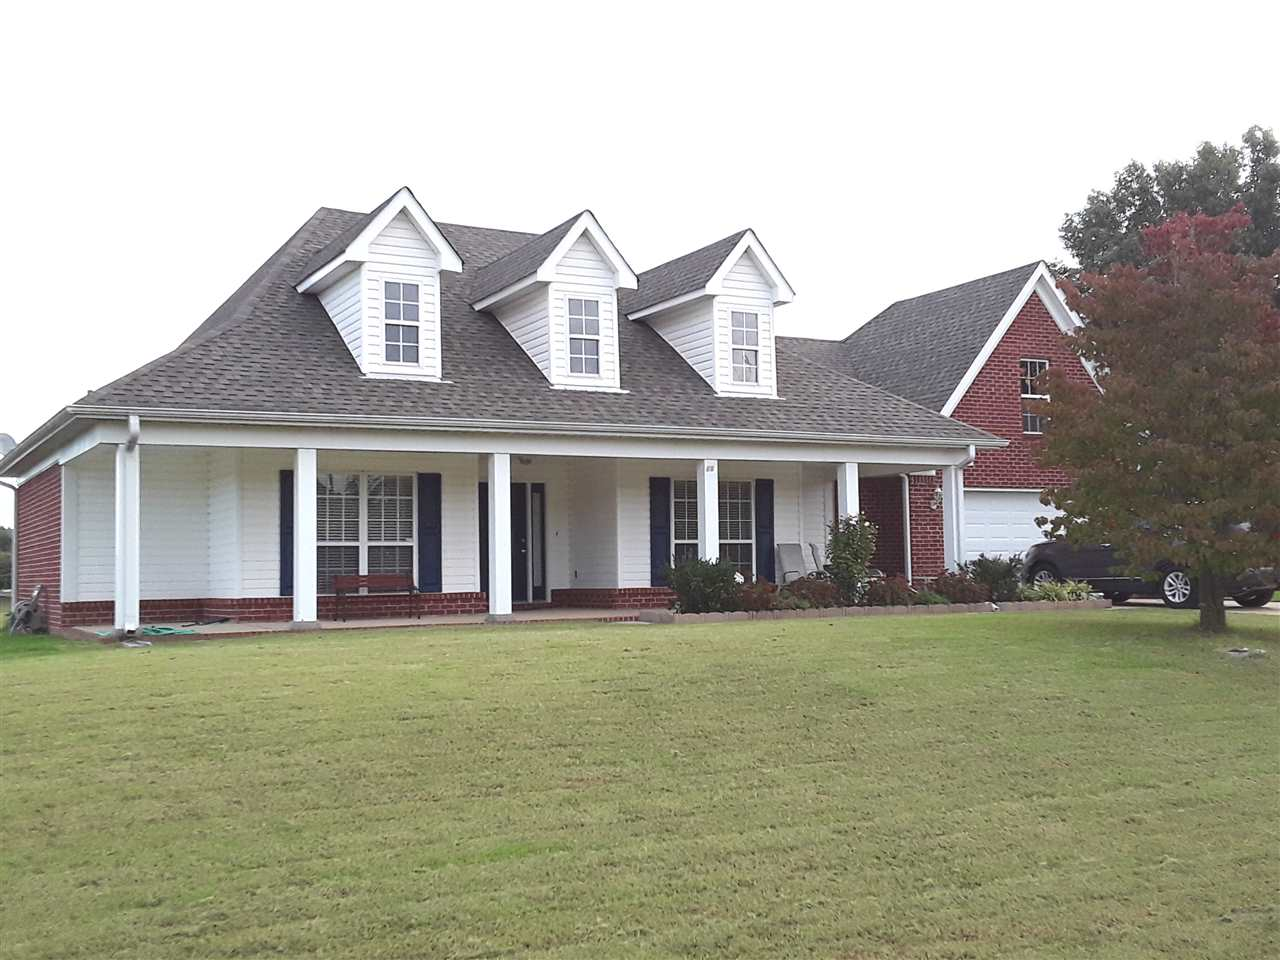 16 Harvey, Munford, TN 38058